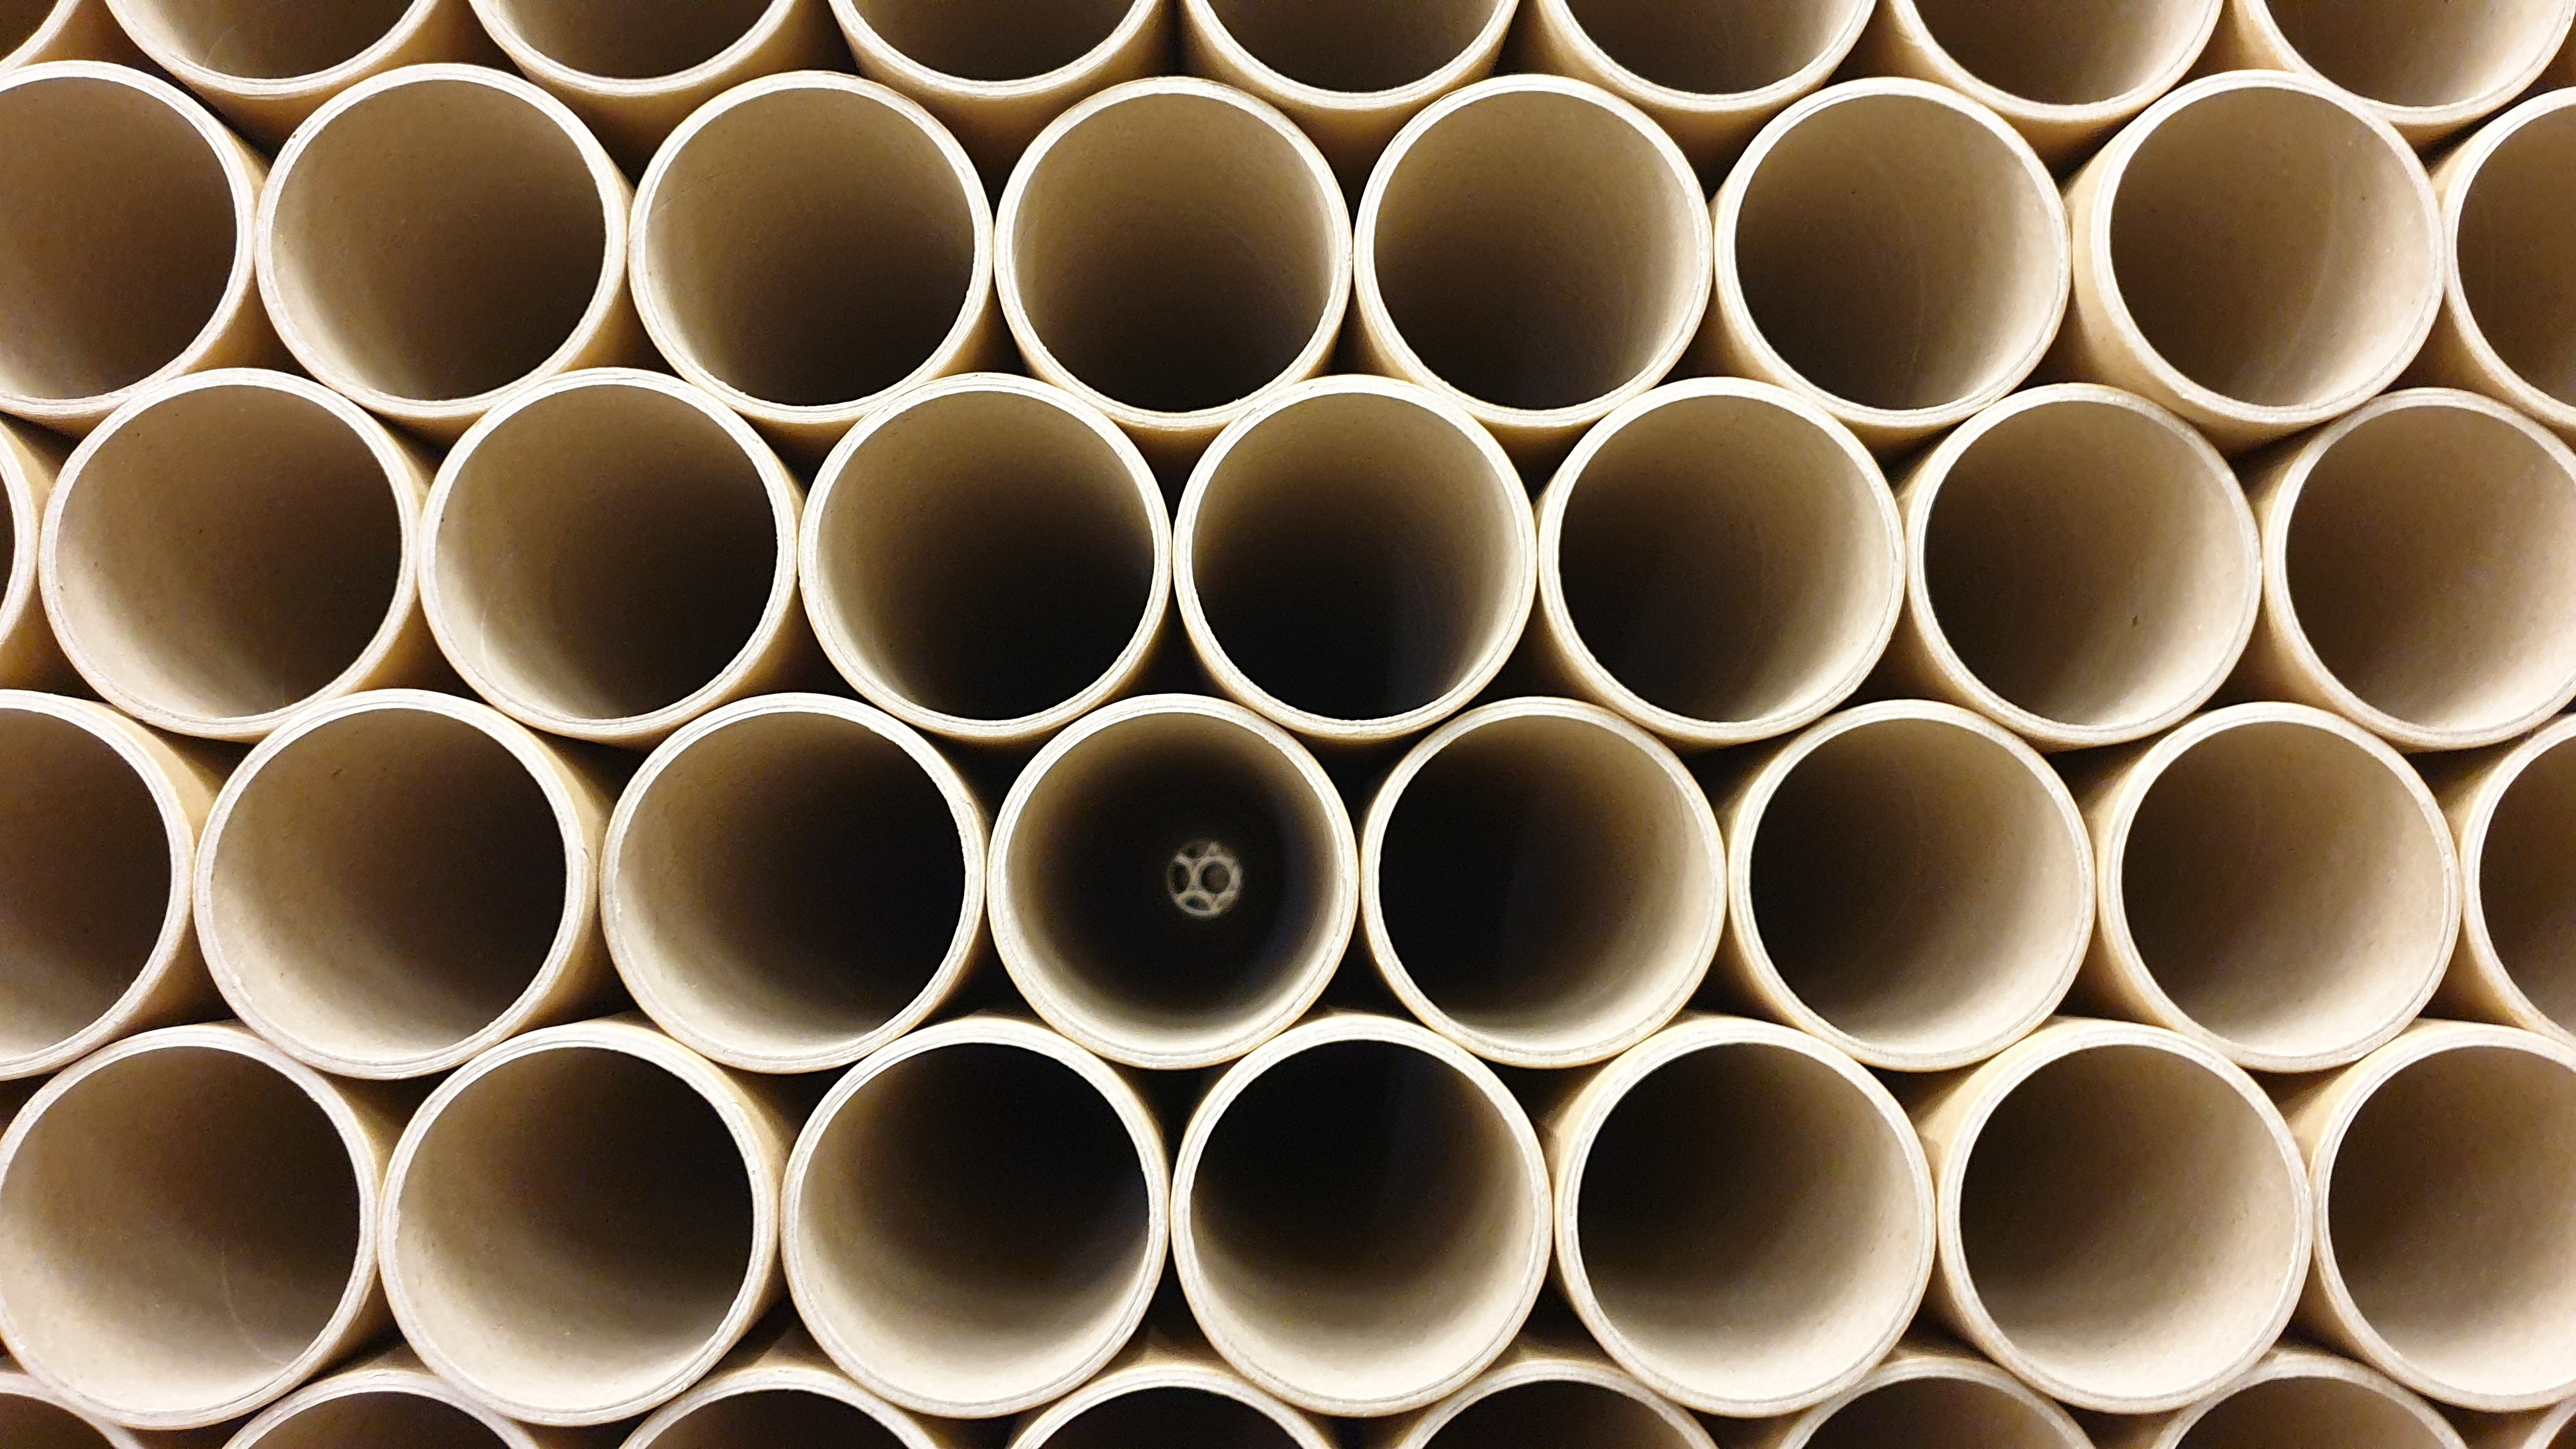 Tubes and Cores drying kilns: Tubes and Cores drying kilns